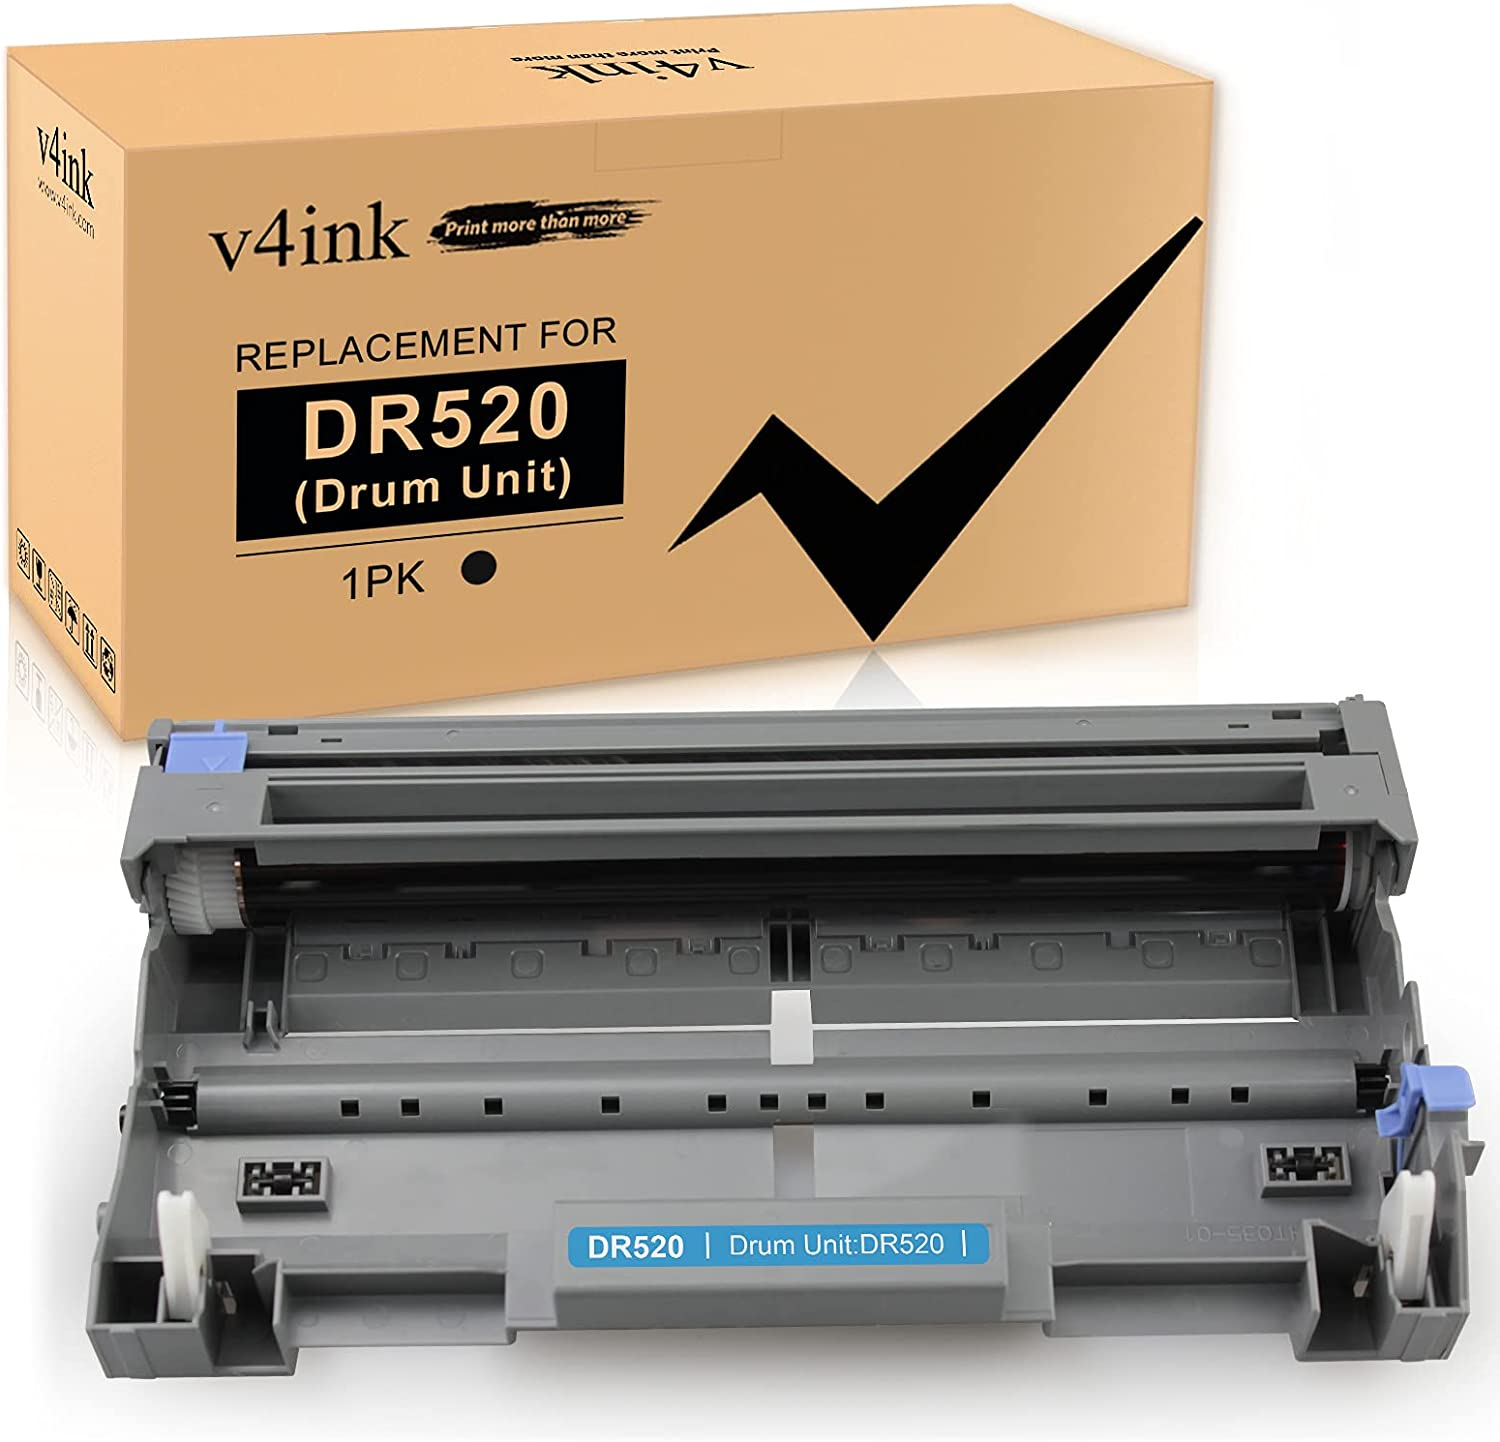 V4INK 1PK Compatible DR-620 DR-520 Drum Replacement for Brother DR520 DR620 Drum for Brother HL-5250DN HL-5340D HL-5370DW MFC-8480DN MFC-8690DW MFC-8860DN MFC-8890DW DCP-8060 DCP-8065DN Printer